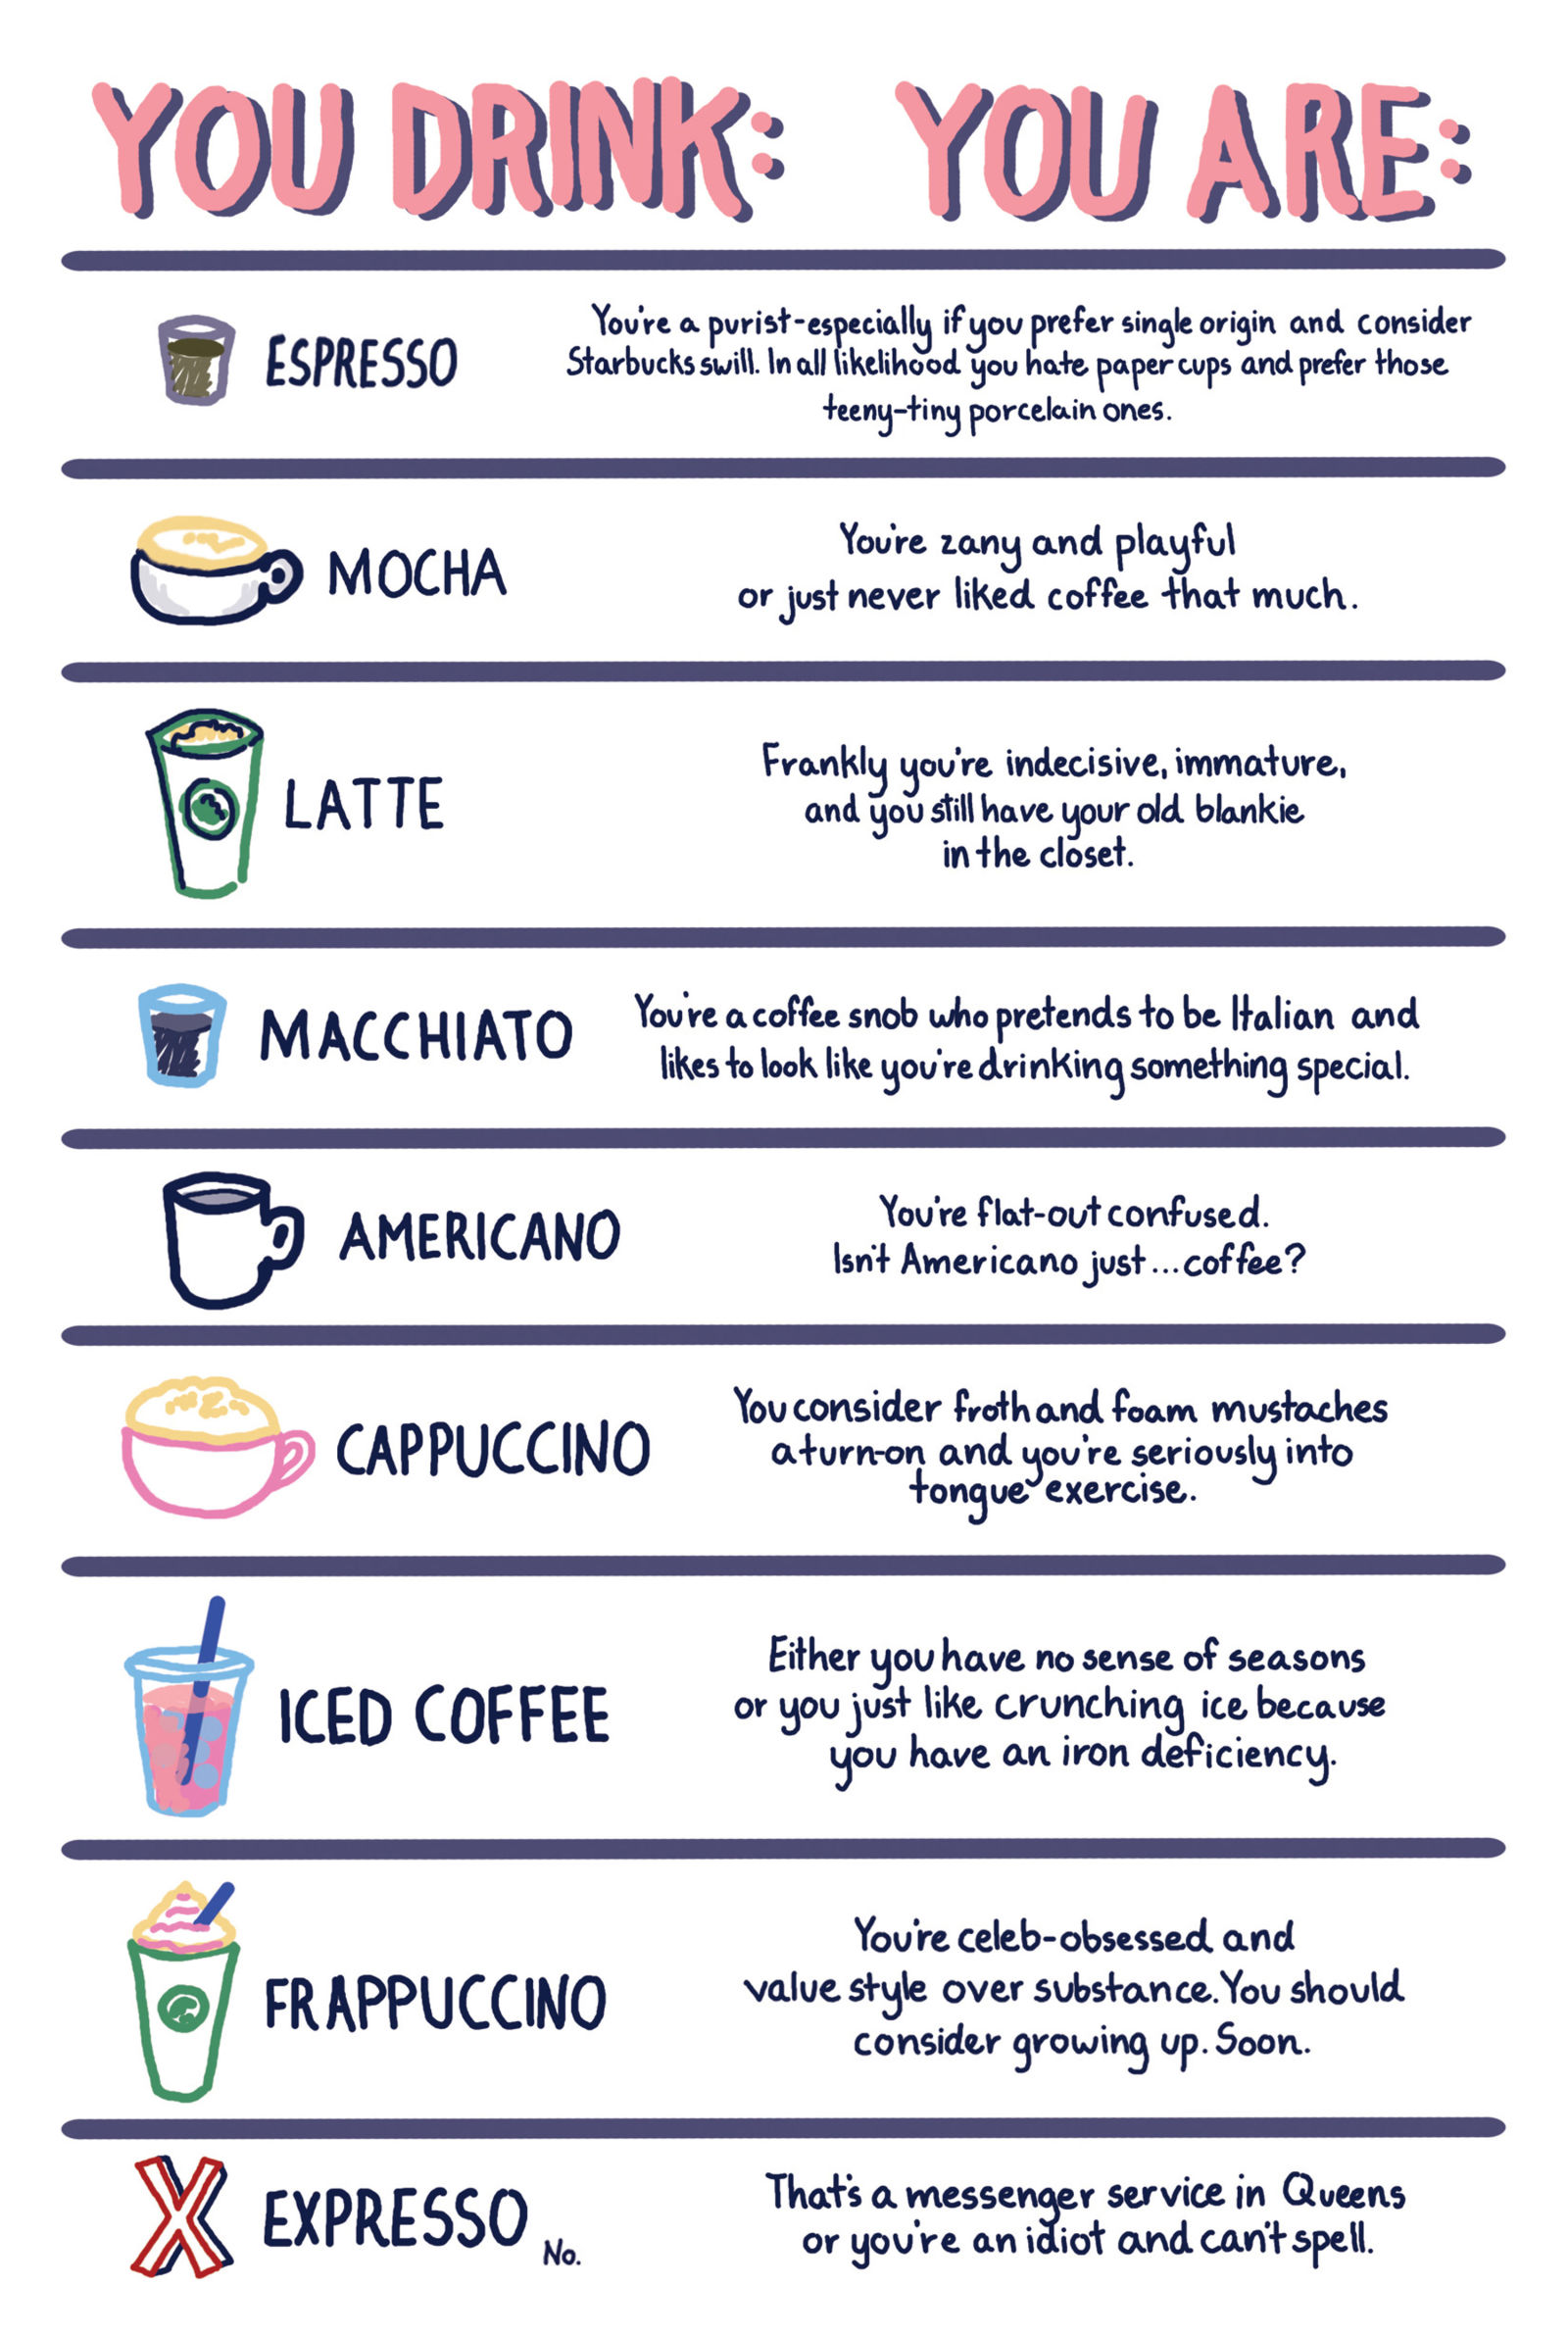 that shows what your favorite coffee says about you